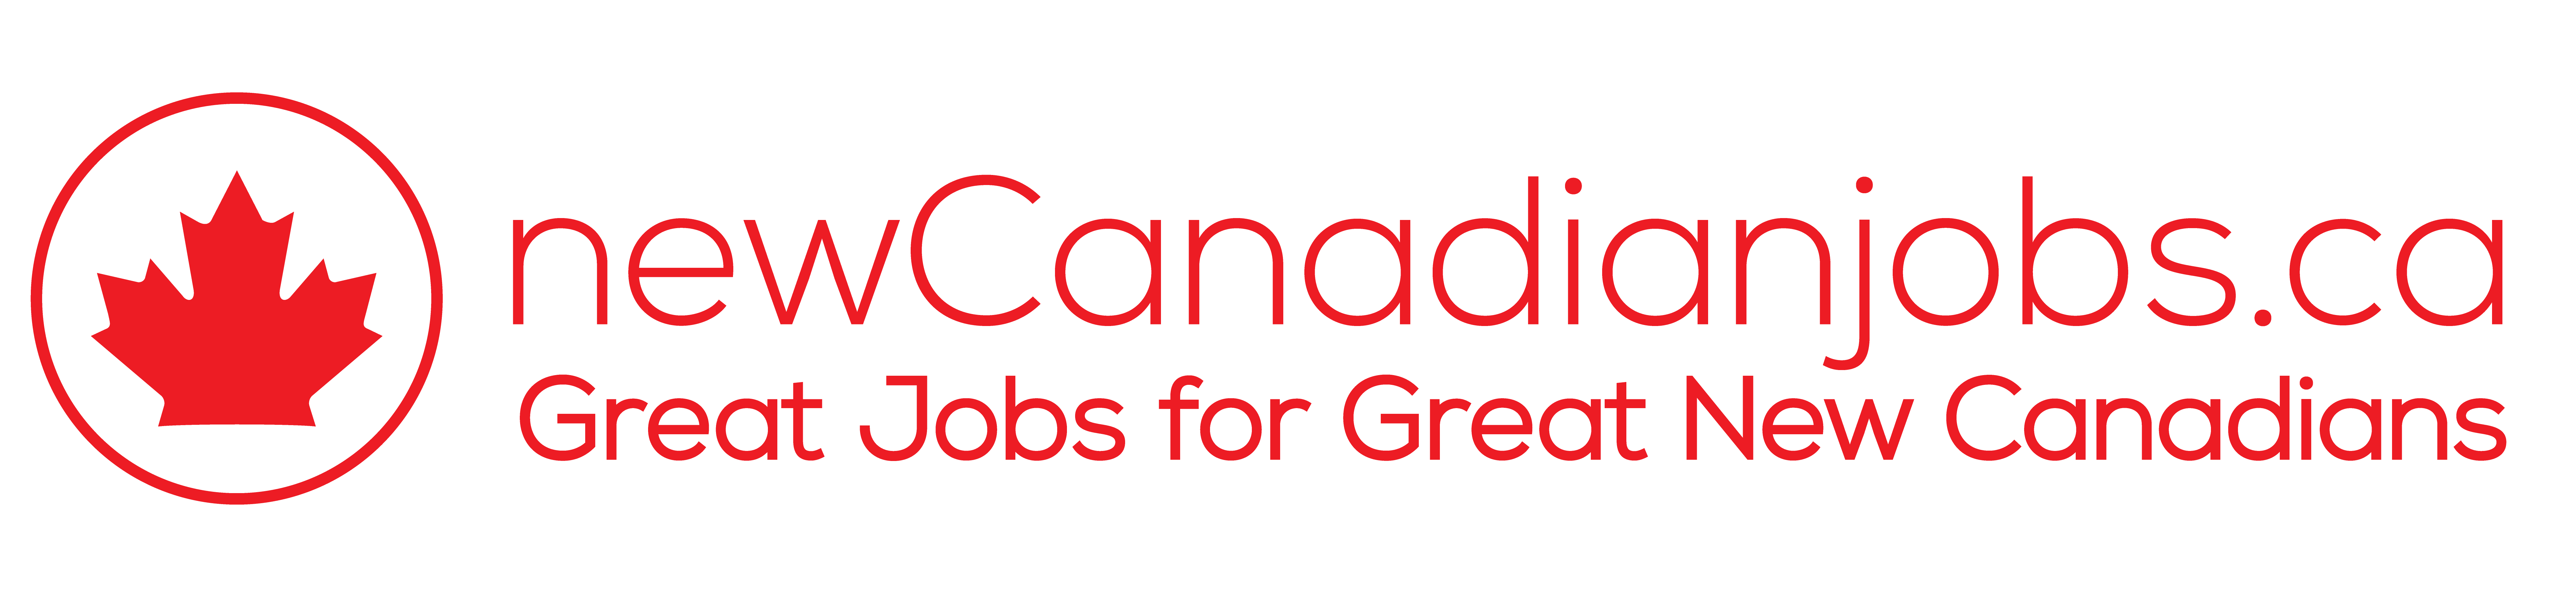 New Canadian Jobs